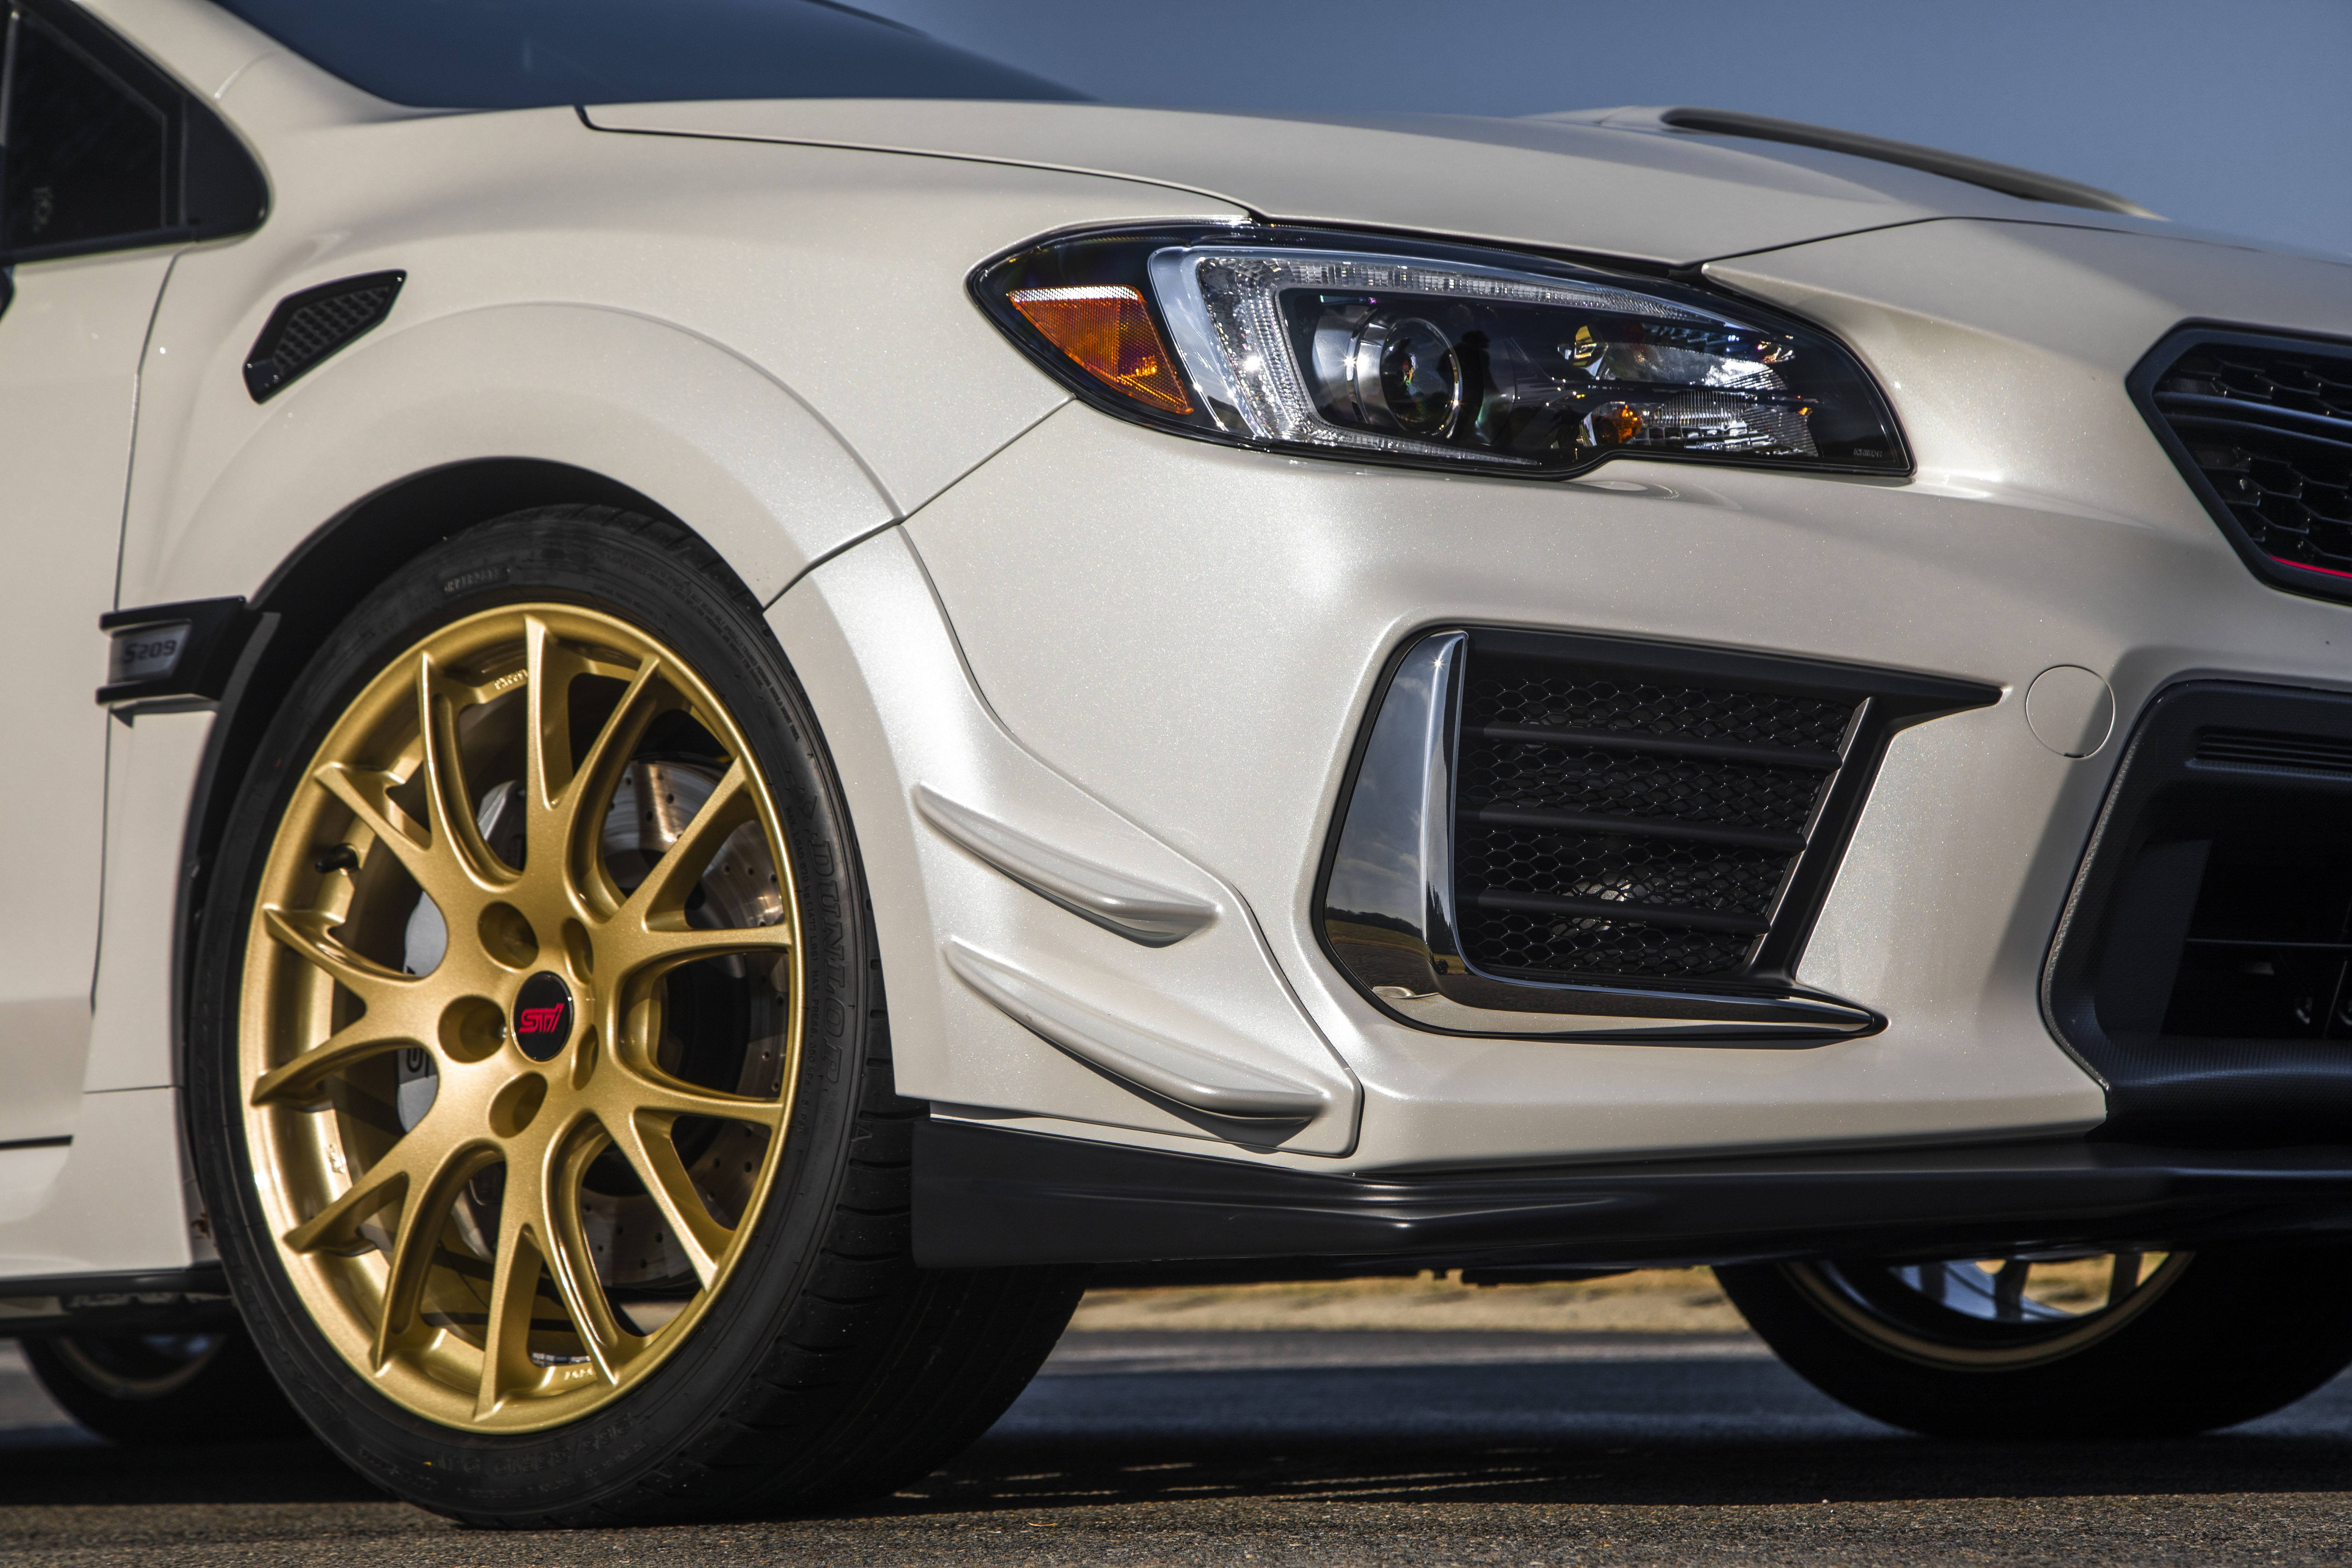 9 Things You Need To Know About The Subaru Wrx Sti S209